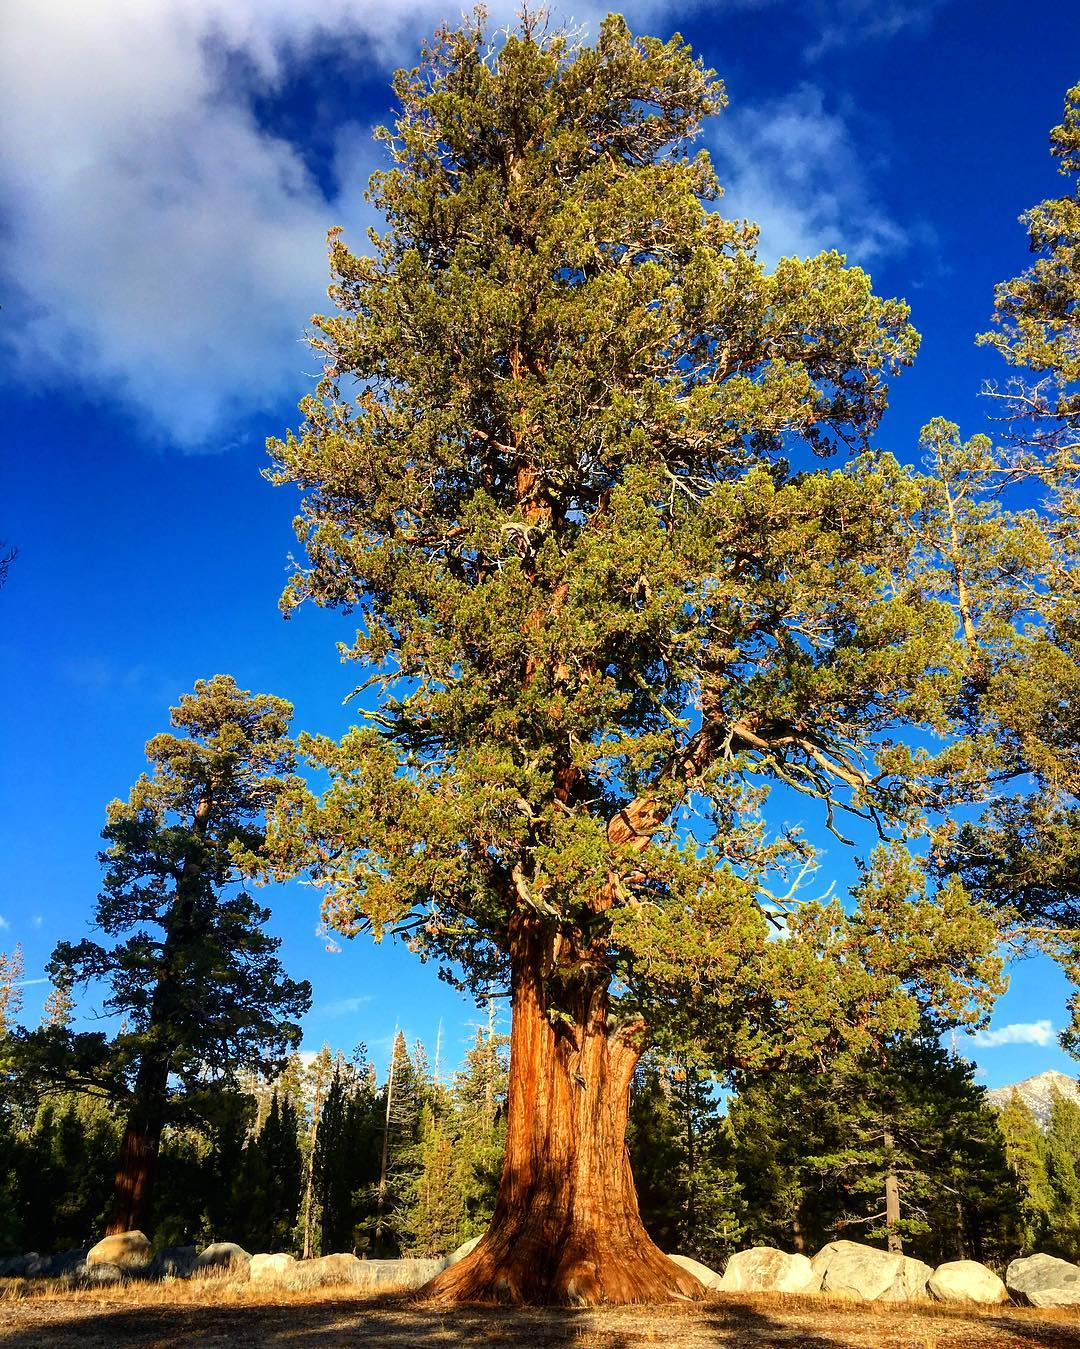 The Western Juniper, also known as a Sierra Juniper. One of the many great trees in our fine little town of Meyers, California. #risedesigns #risedesignstahoe #inspiredbynature #drivenbydesign #tahoesouth #eldoradocounty #tahoesnaps #tahoelife...